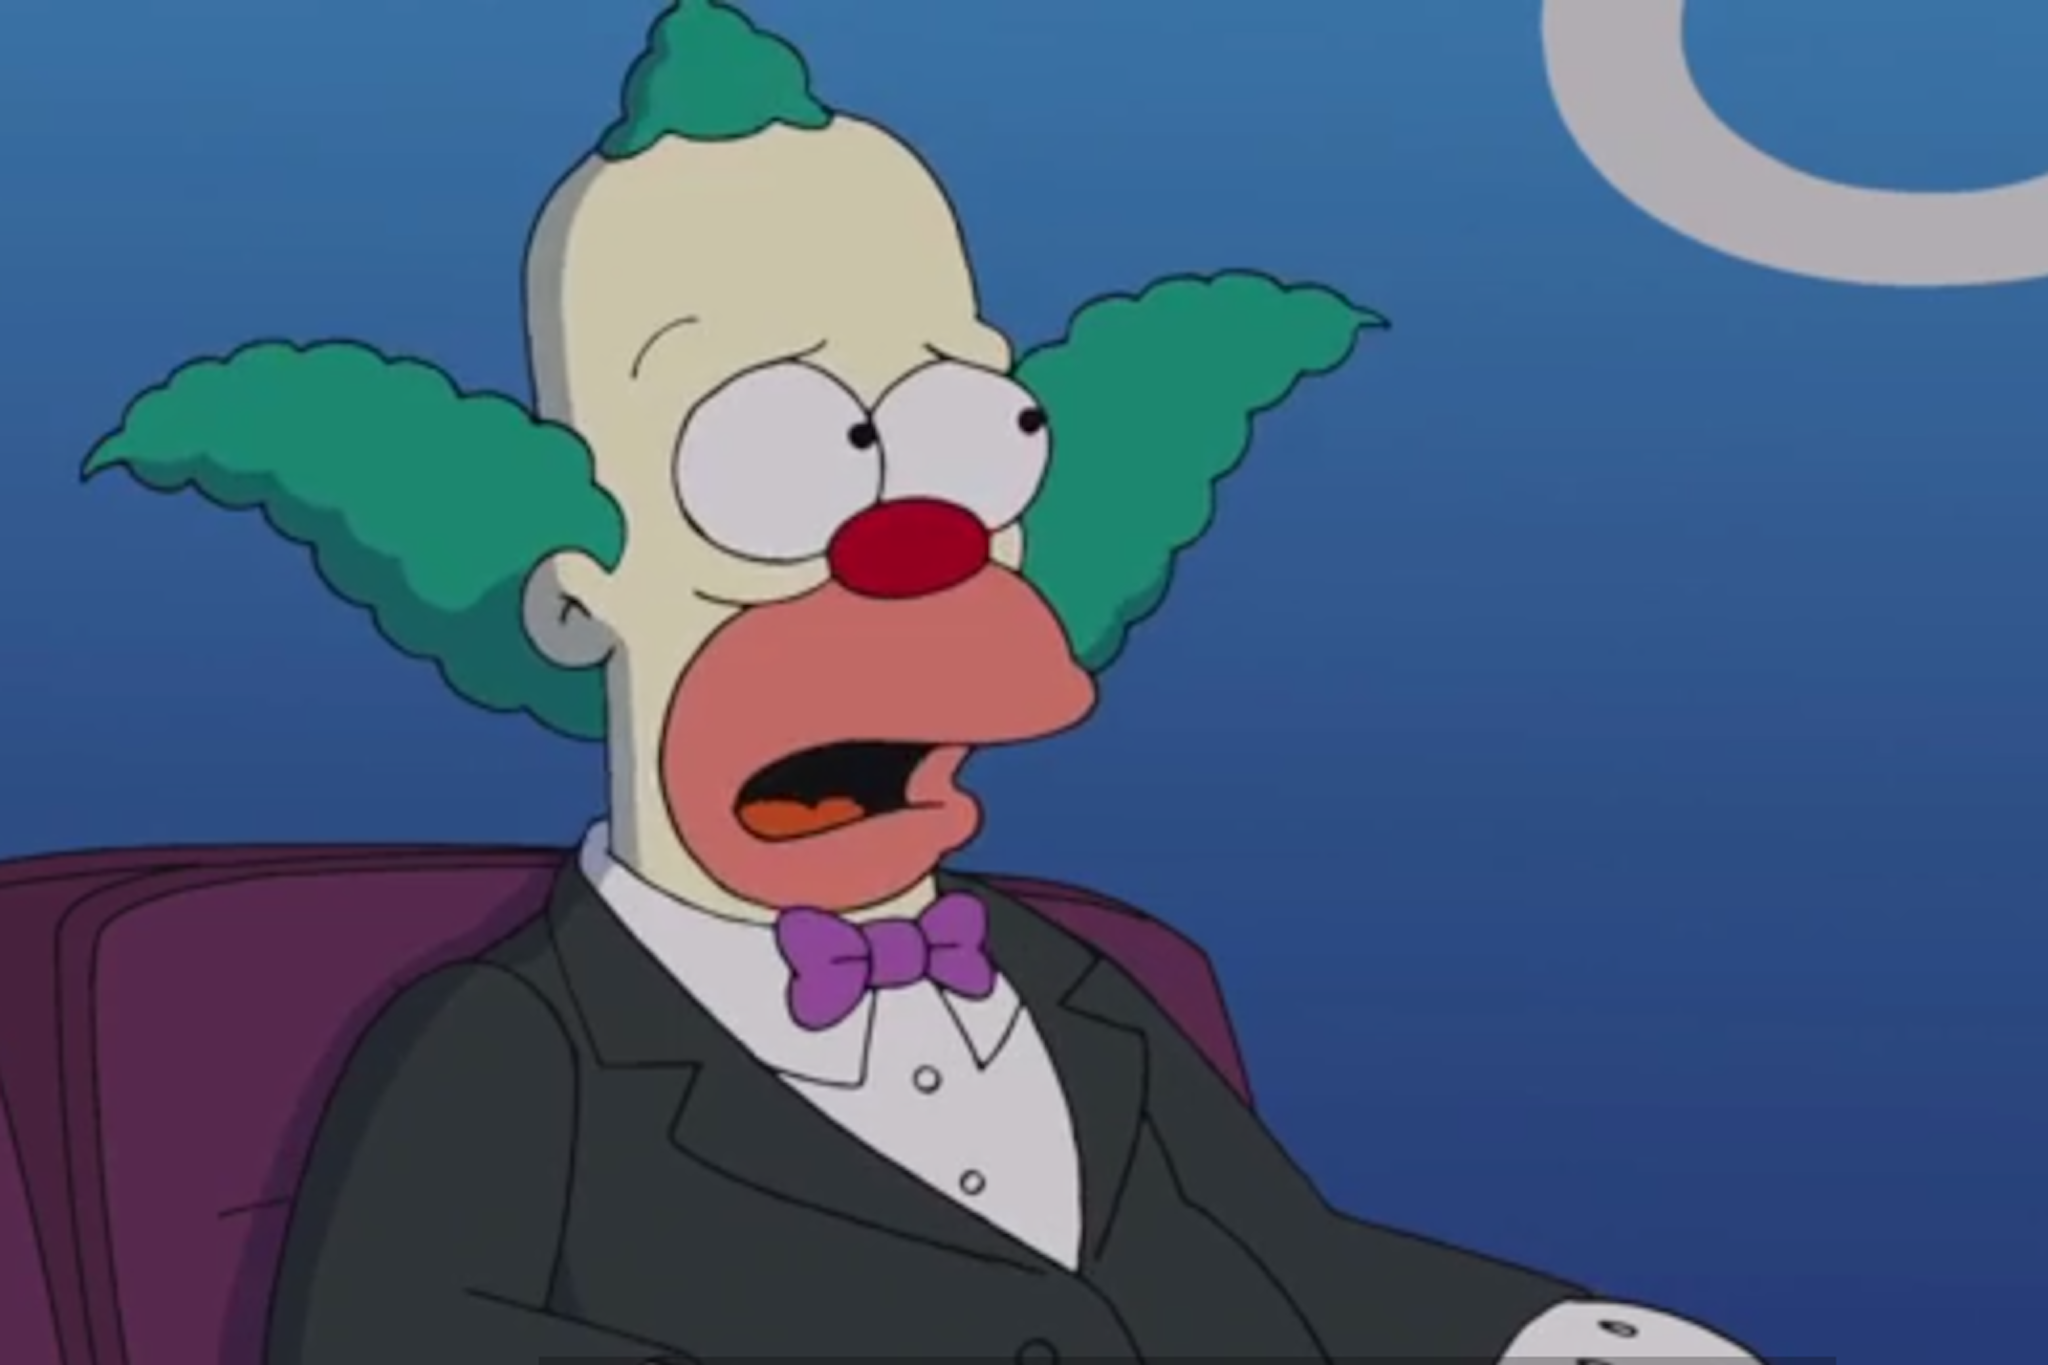 krusty the clown quits in new simpsons season premiere